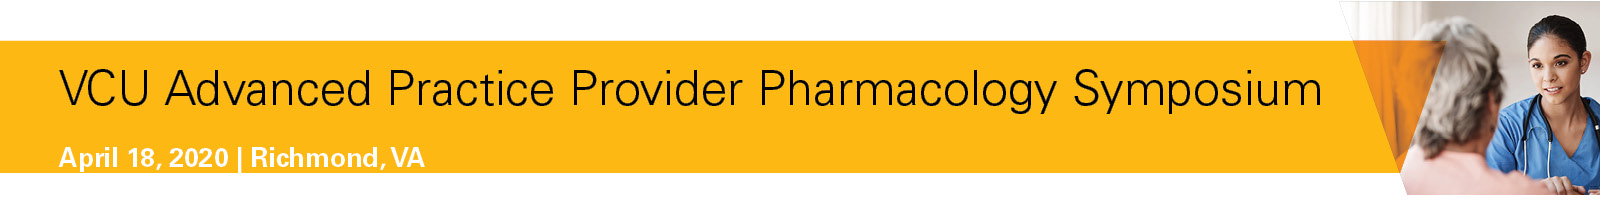 2020 VCU Advanced Practice Provider Pharmacology Symposium Banner